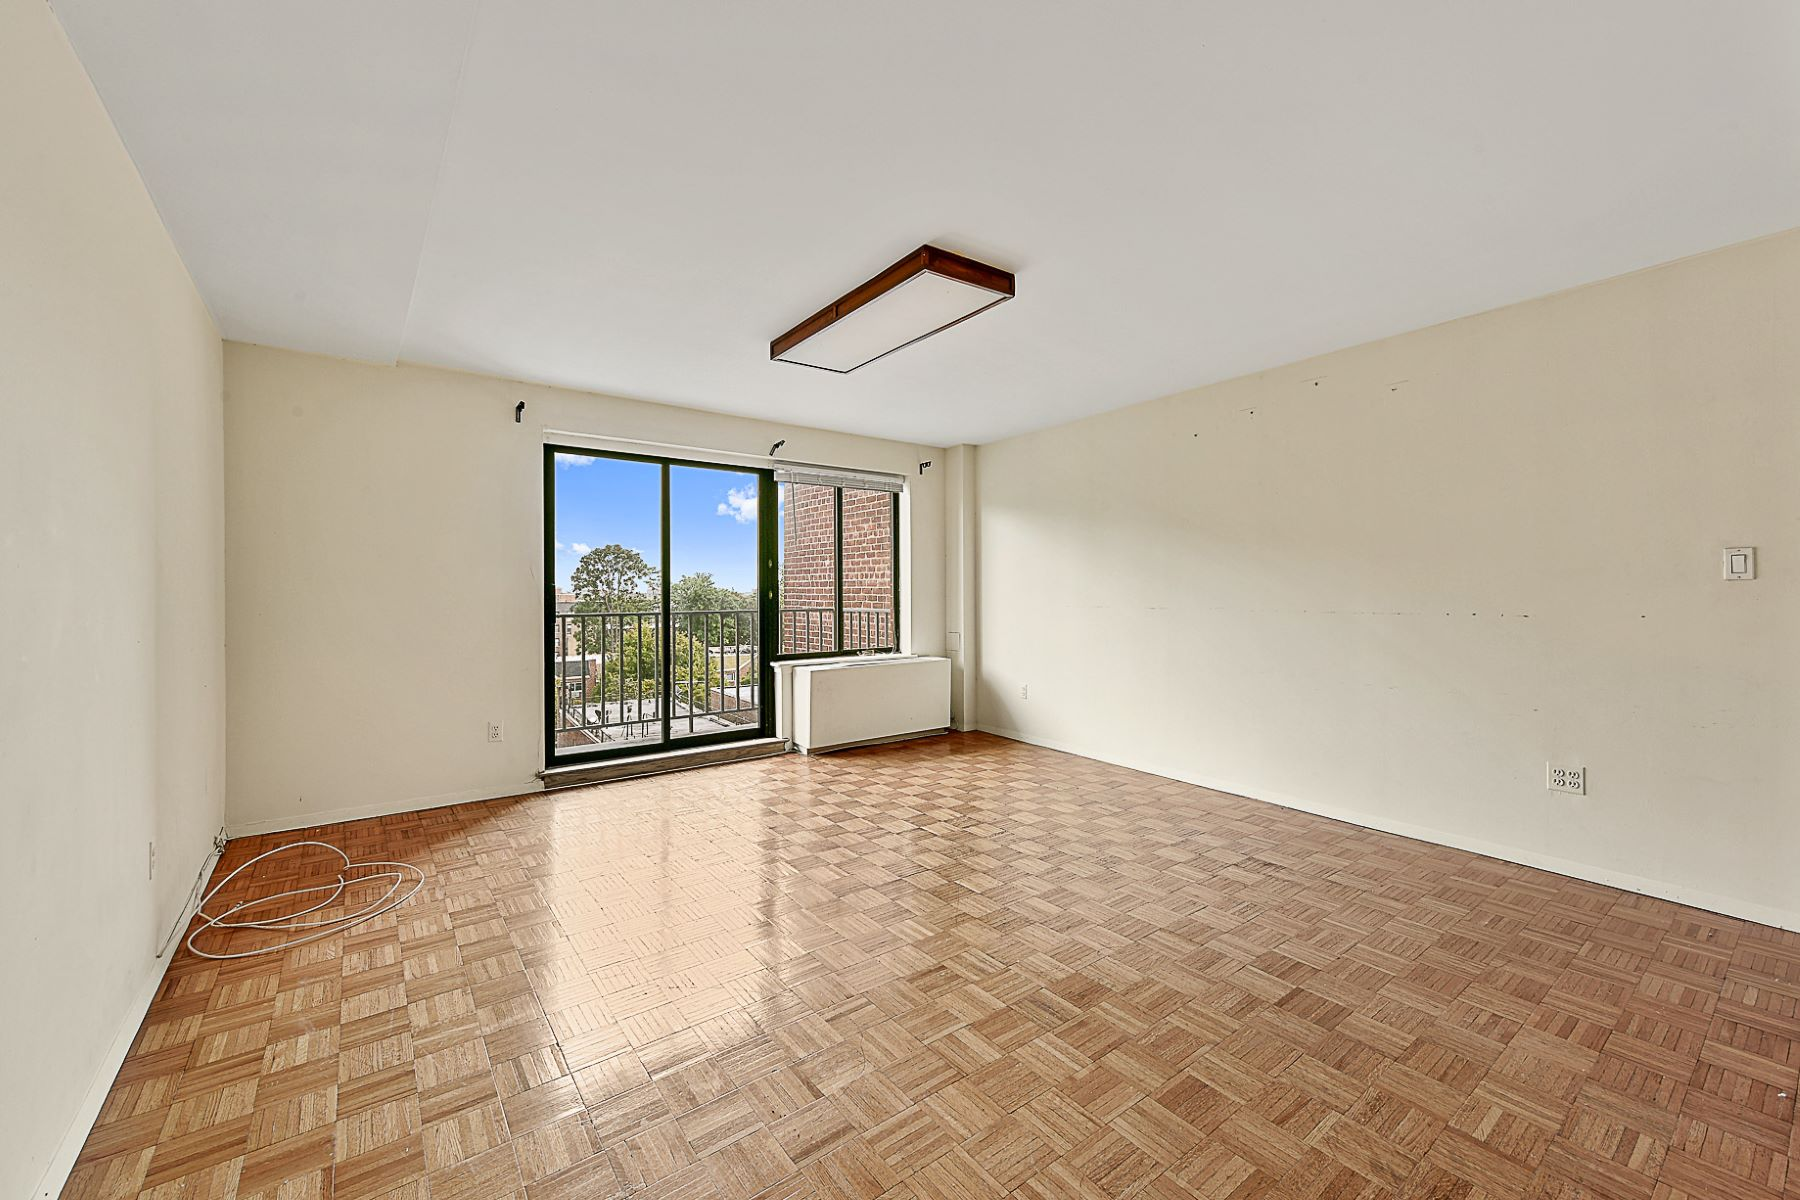 共管物業 為 出售 在 Ligth-filled 2 BR Condo near Johnson Ave 3240 Netherland Avenue 6B, Riverdale, 紐約州, 10463 美國